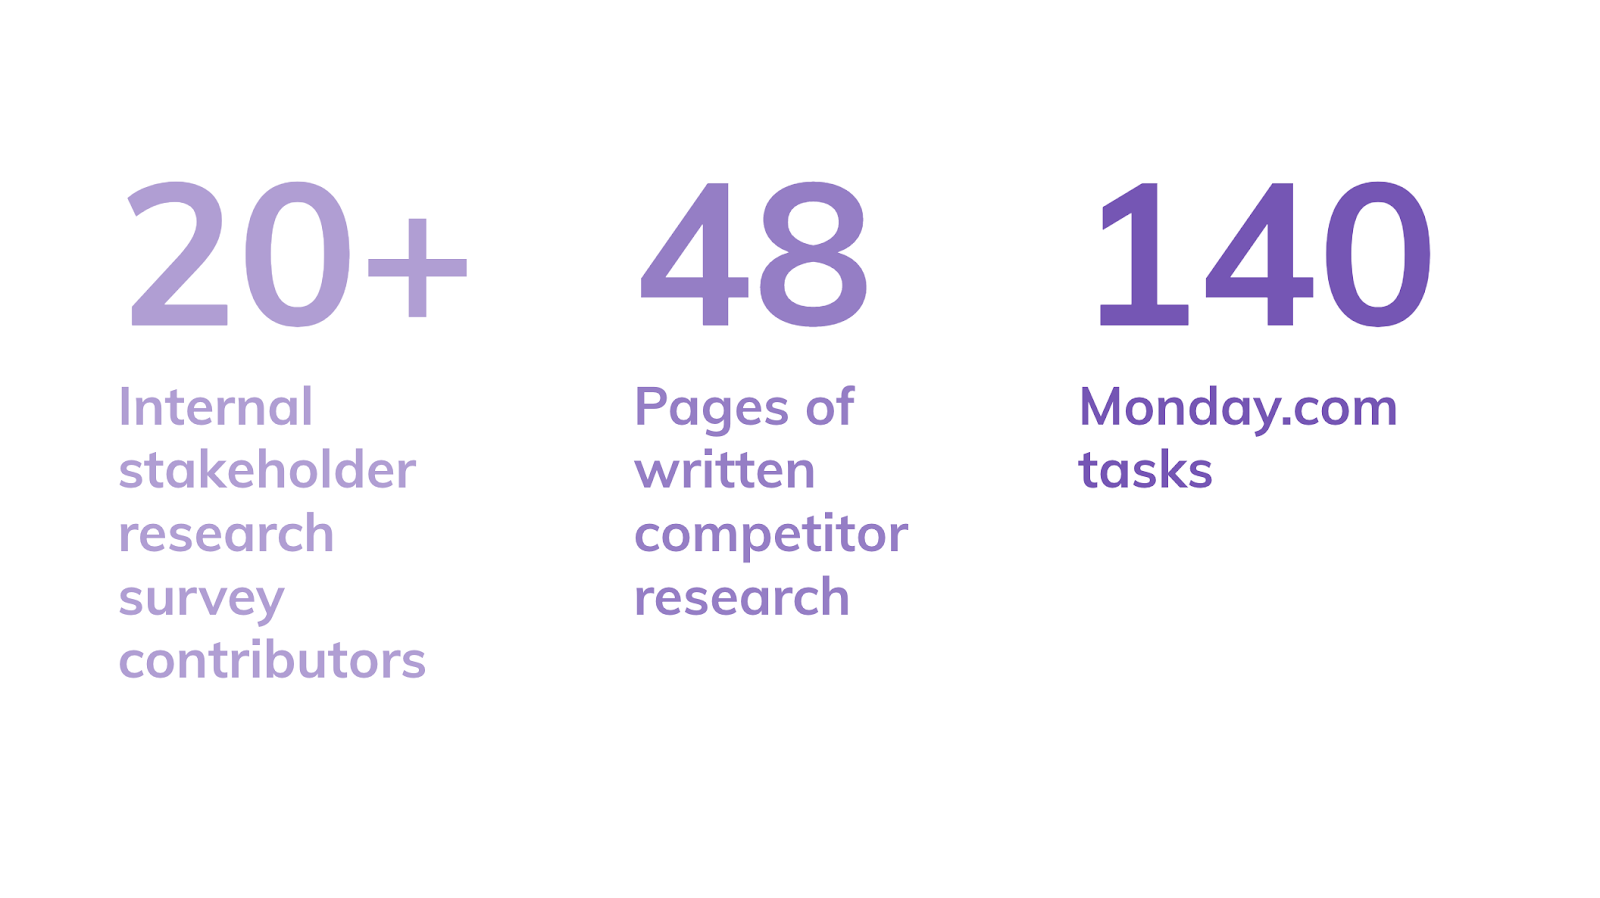 Numbers and statistics on the research done as a first step for the rebrand project